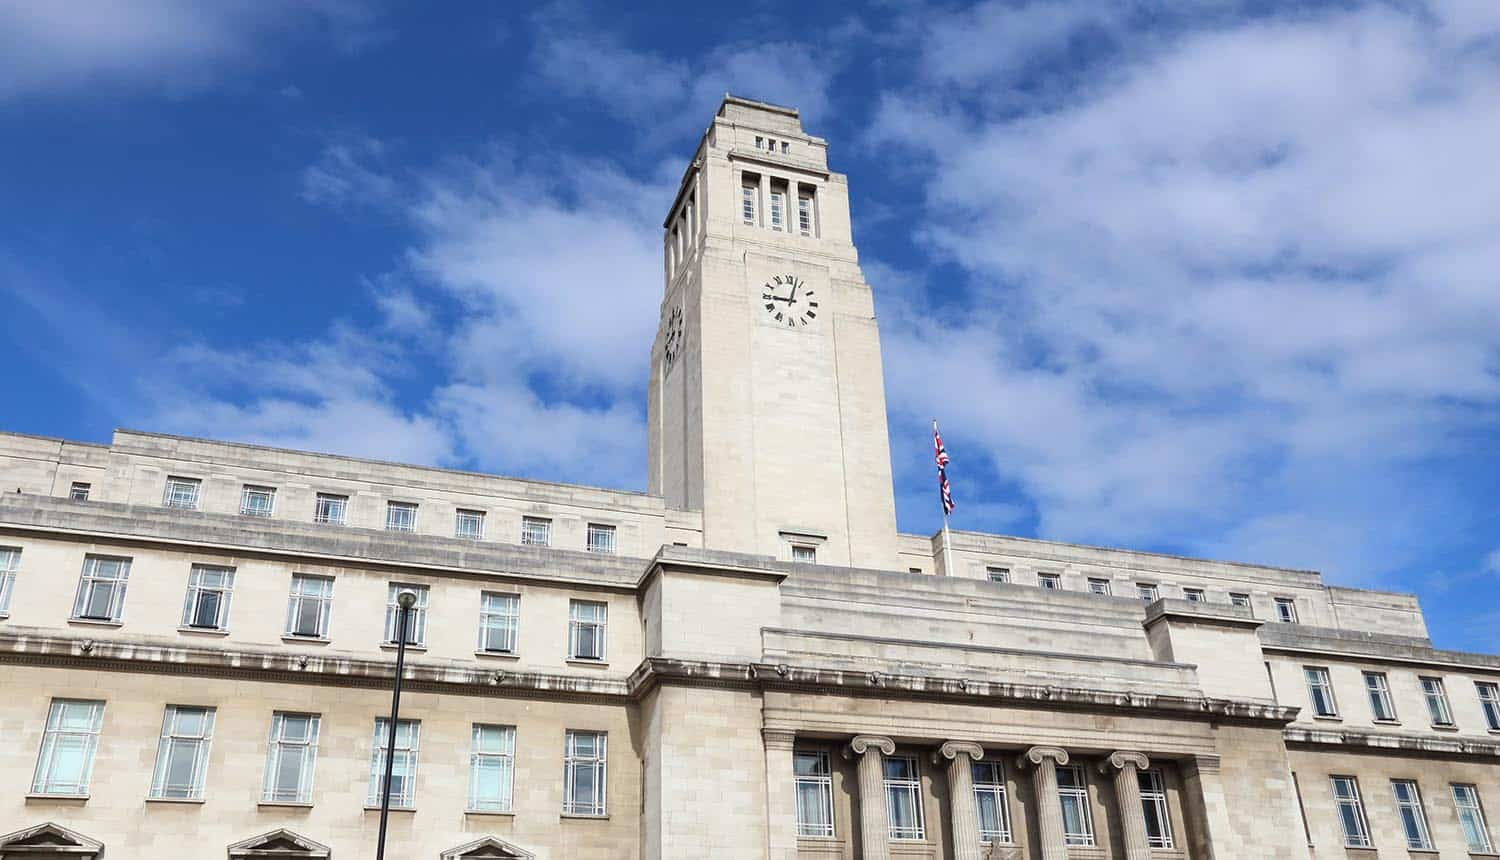 Parkinson Building of the University of Leeds showing threat of ransomware on UK universities